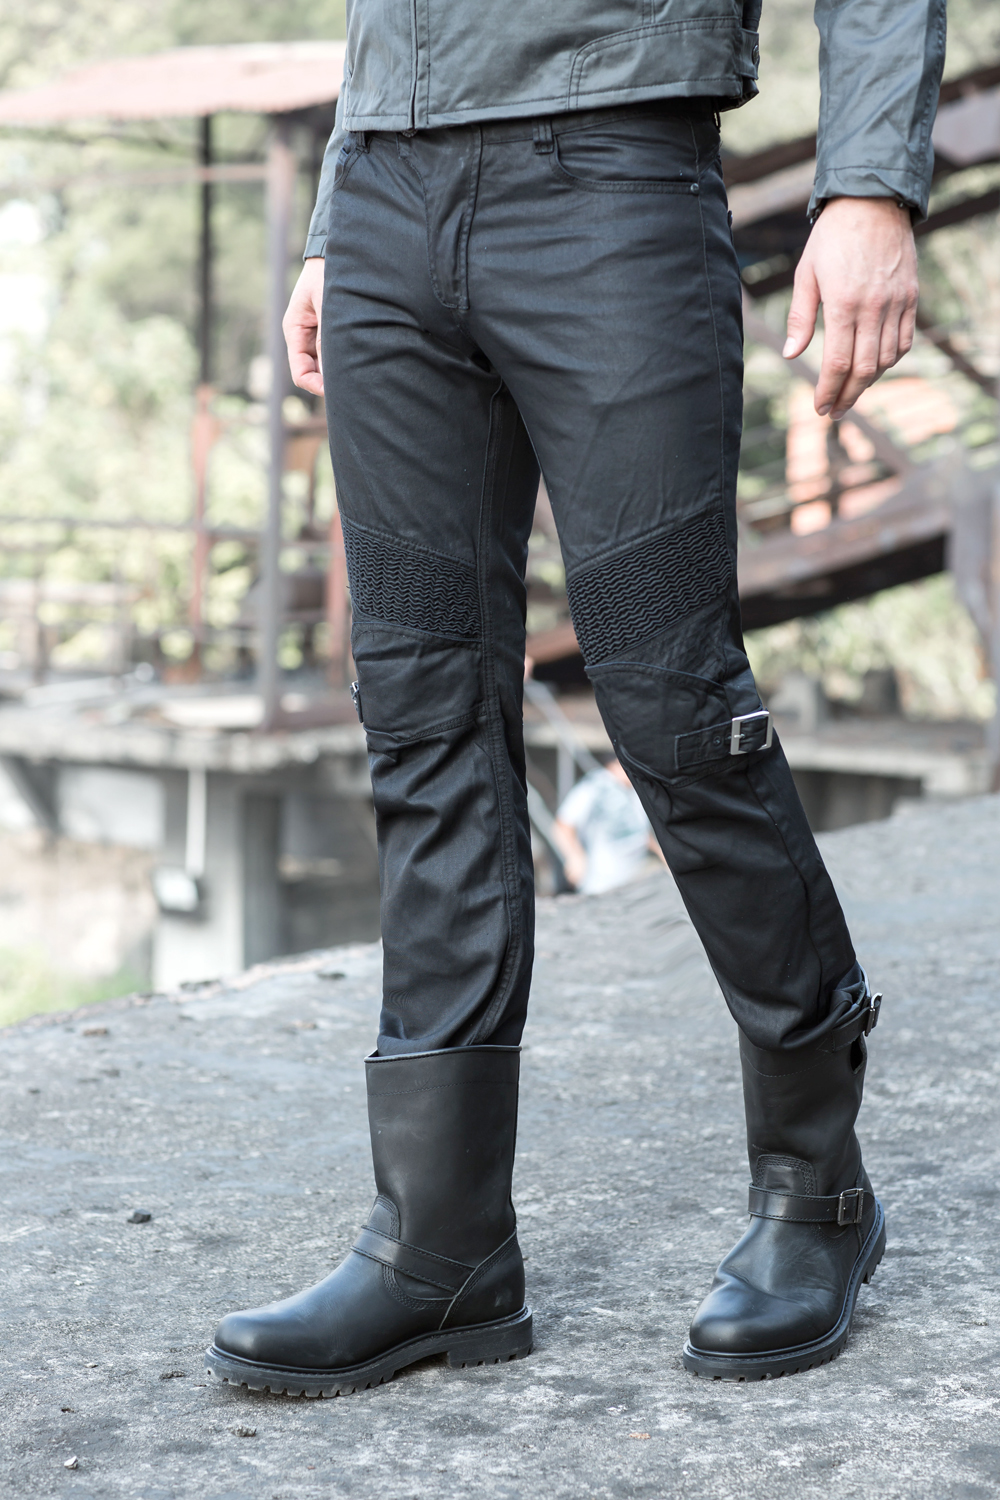 free delivery uglyBROS johnny ubs08 jeans / plastic windproof winter jeans / motorcycle jeans / Men's jeans jeans husky jeans